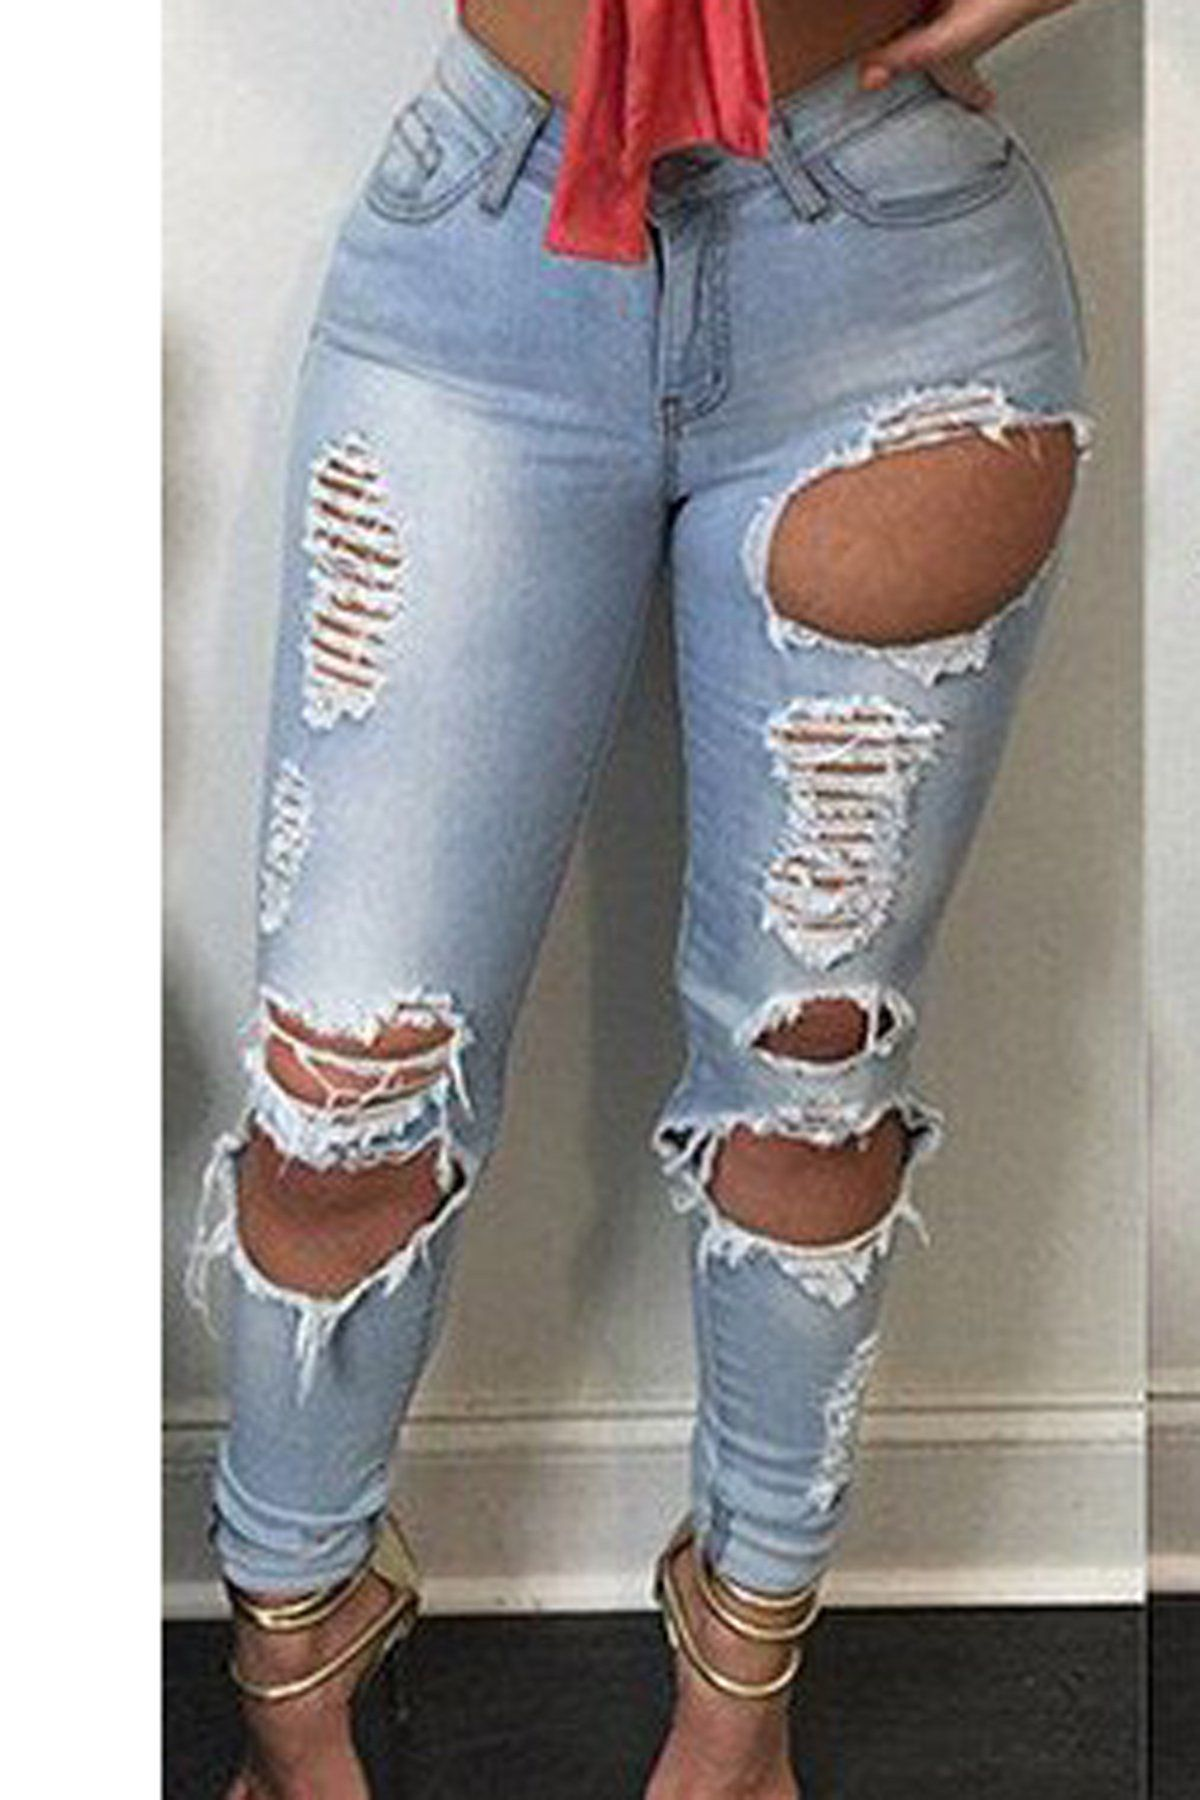 b2e8eb6e2abec High Waist Cut Out Rough Holes Pocket Long Skinny Jeans in 2019 ...